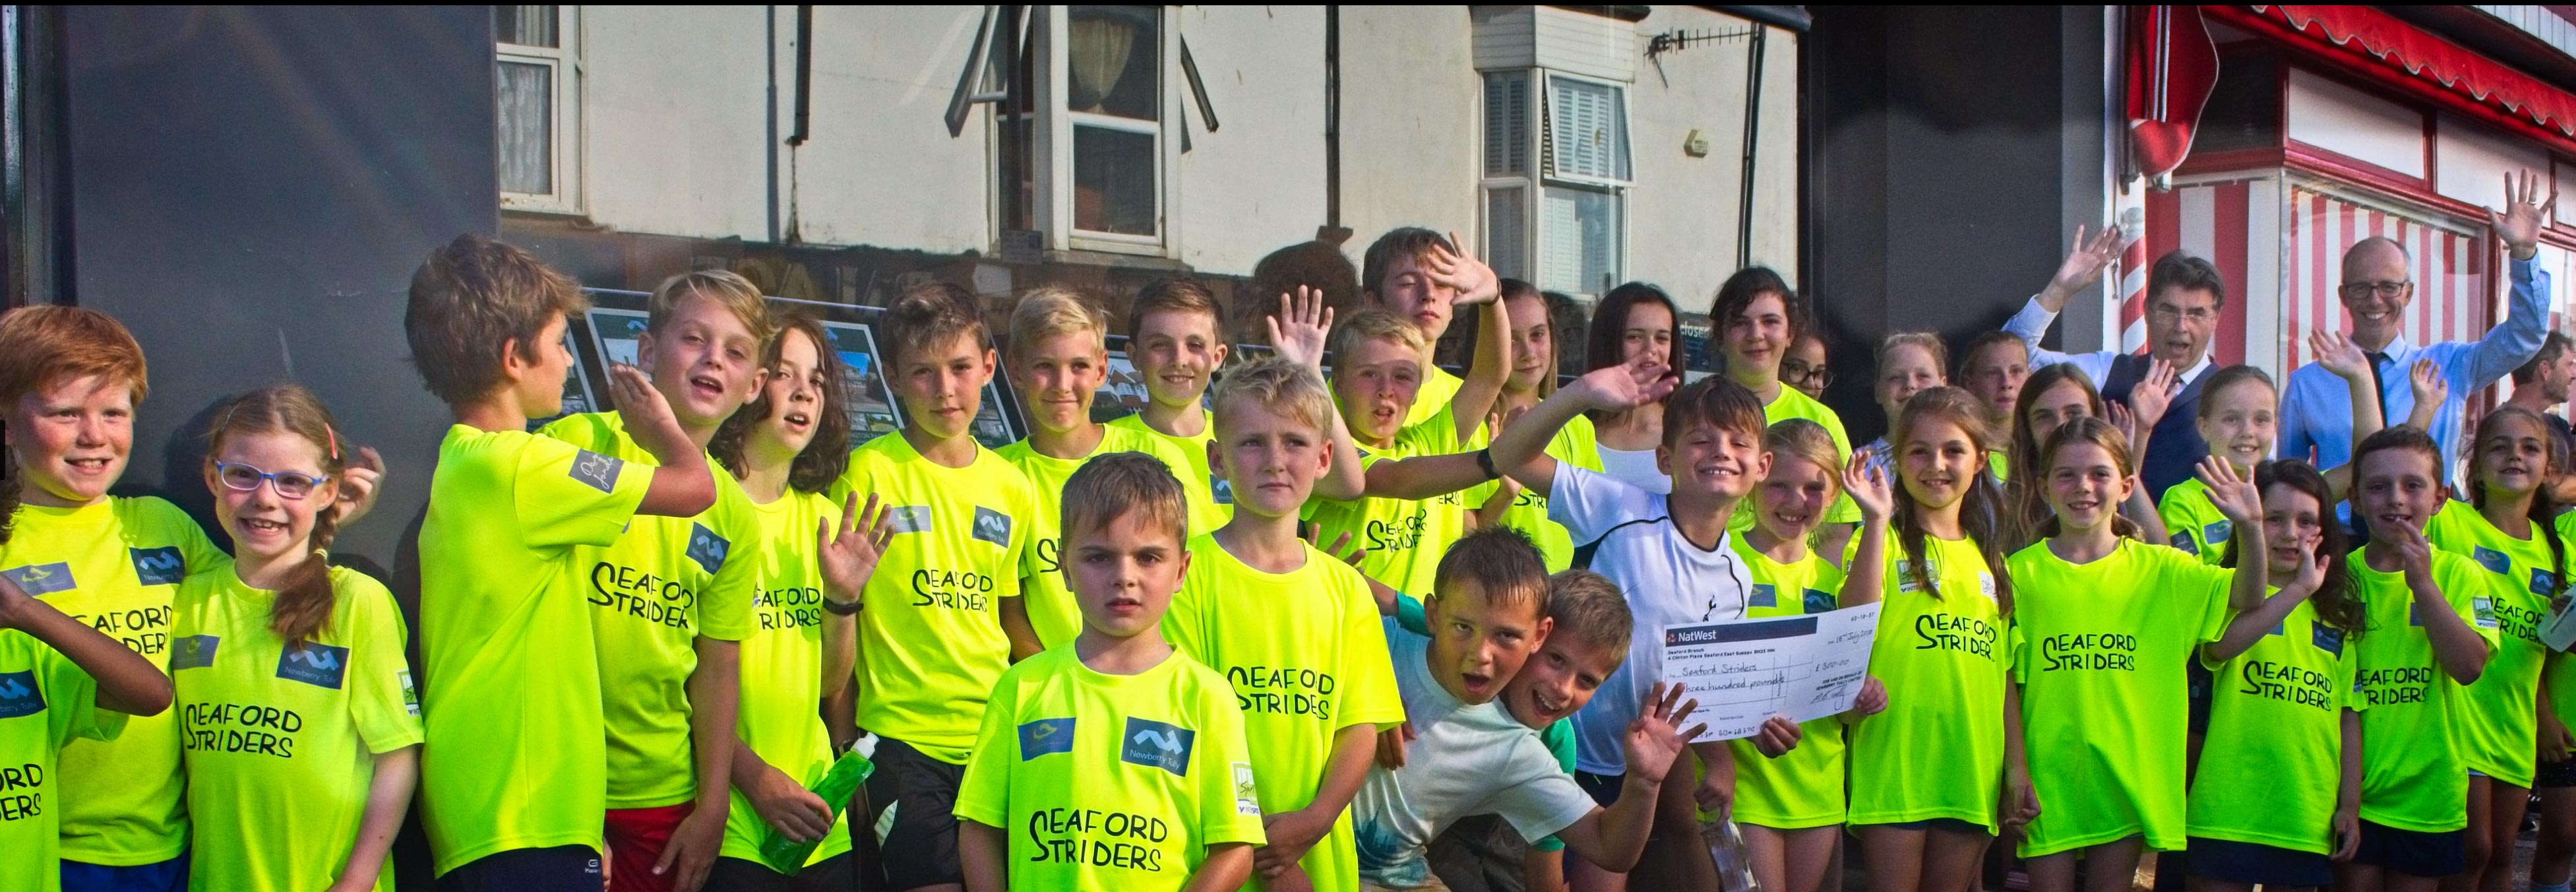 Seaford Striders Juniors Group Photo